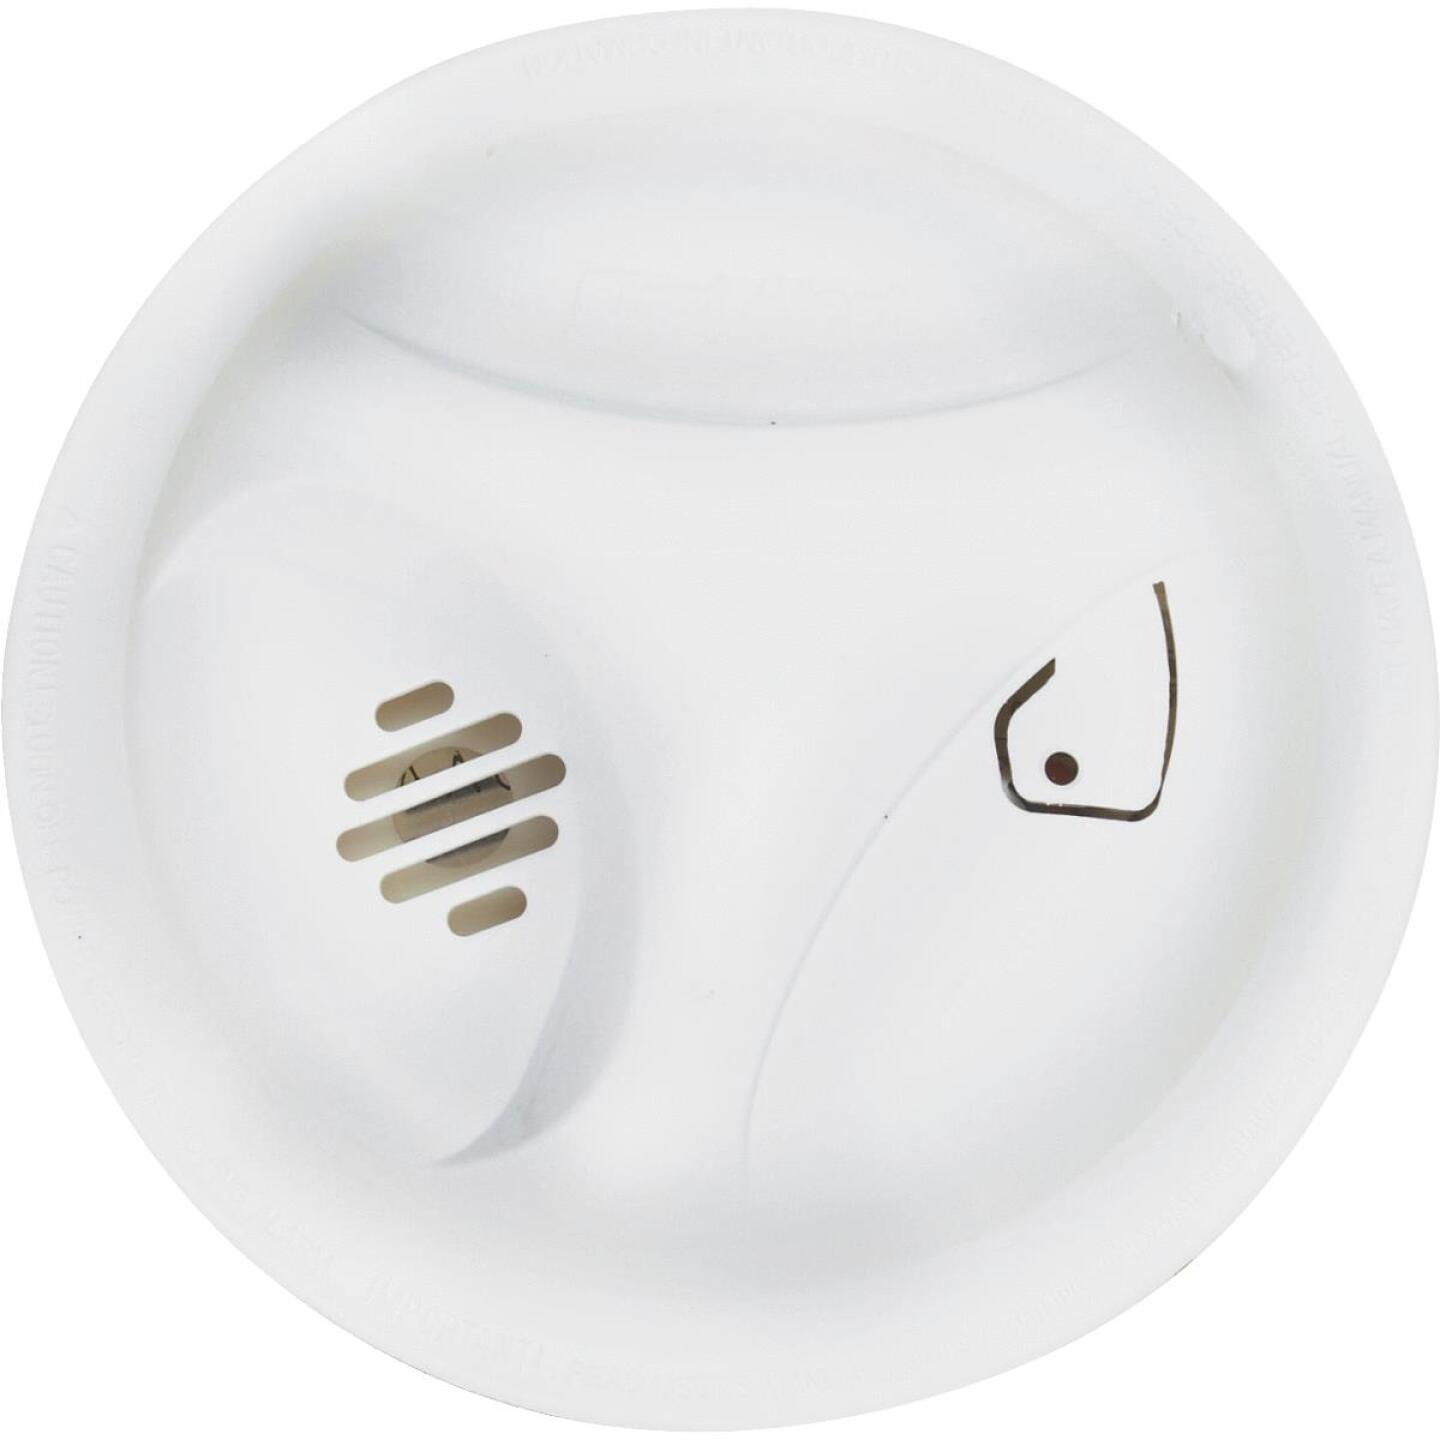 First Alert Battery Operated 9V Ionization Smoke Alarm with Hush Image 2